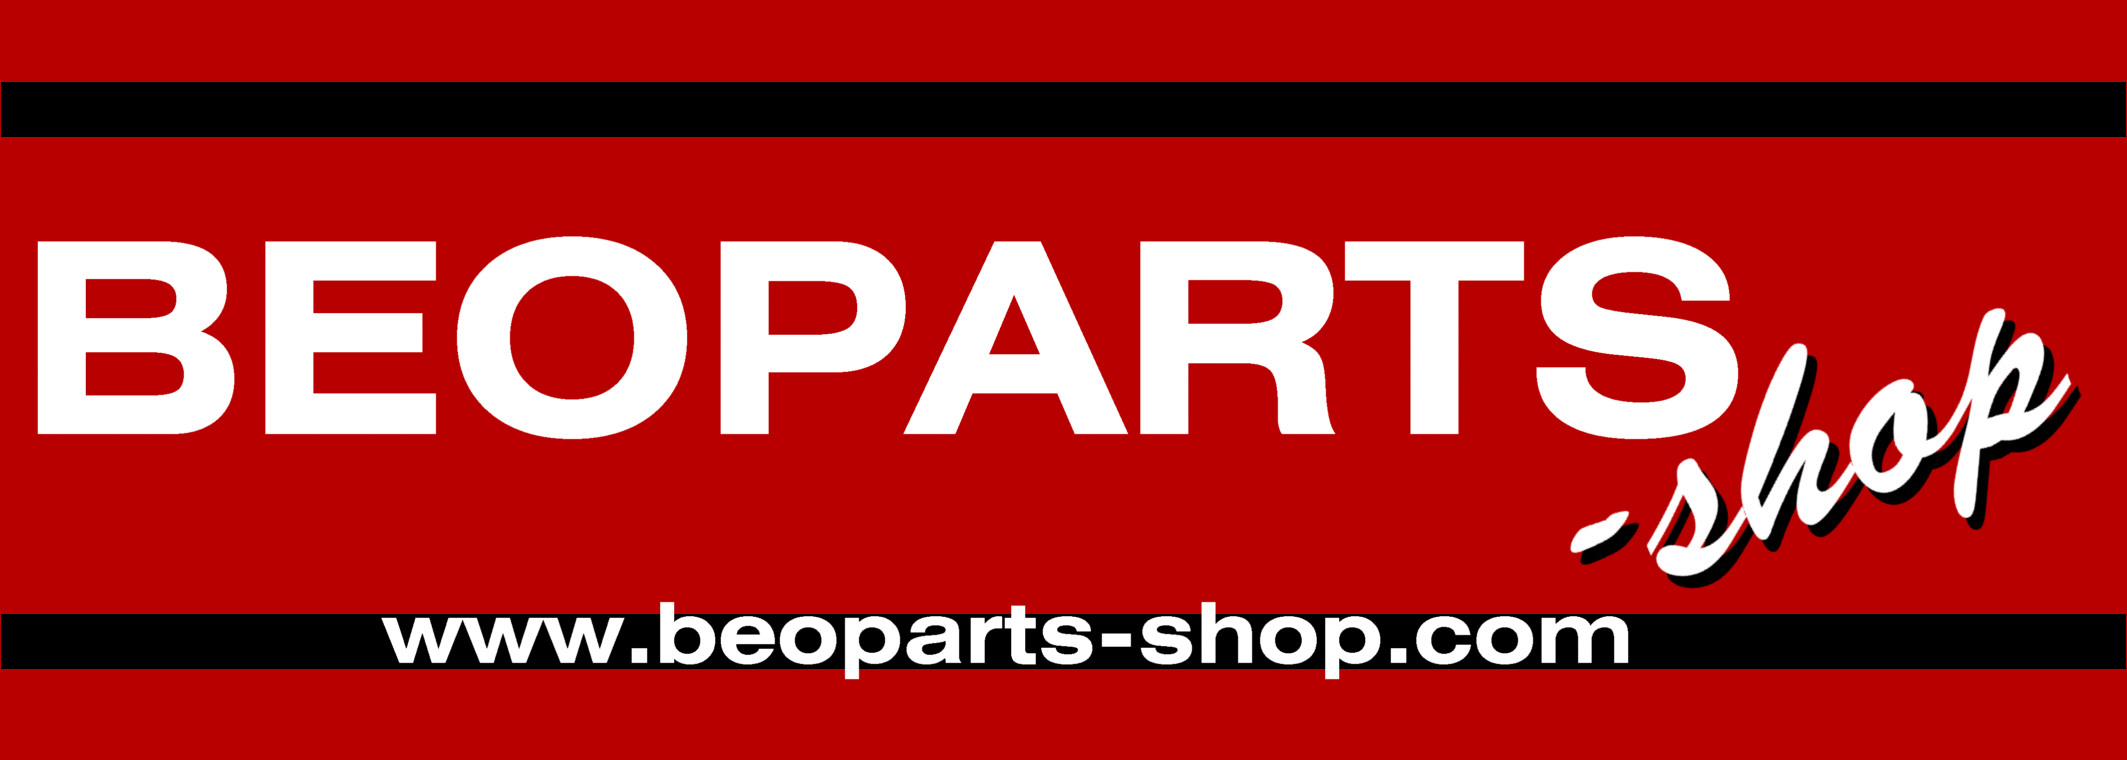 Beoparts-shop